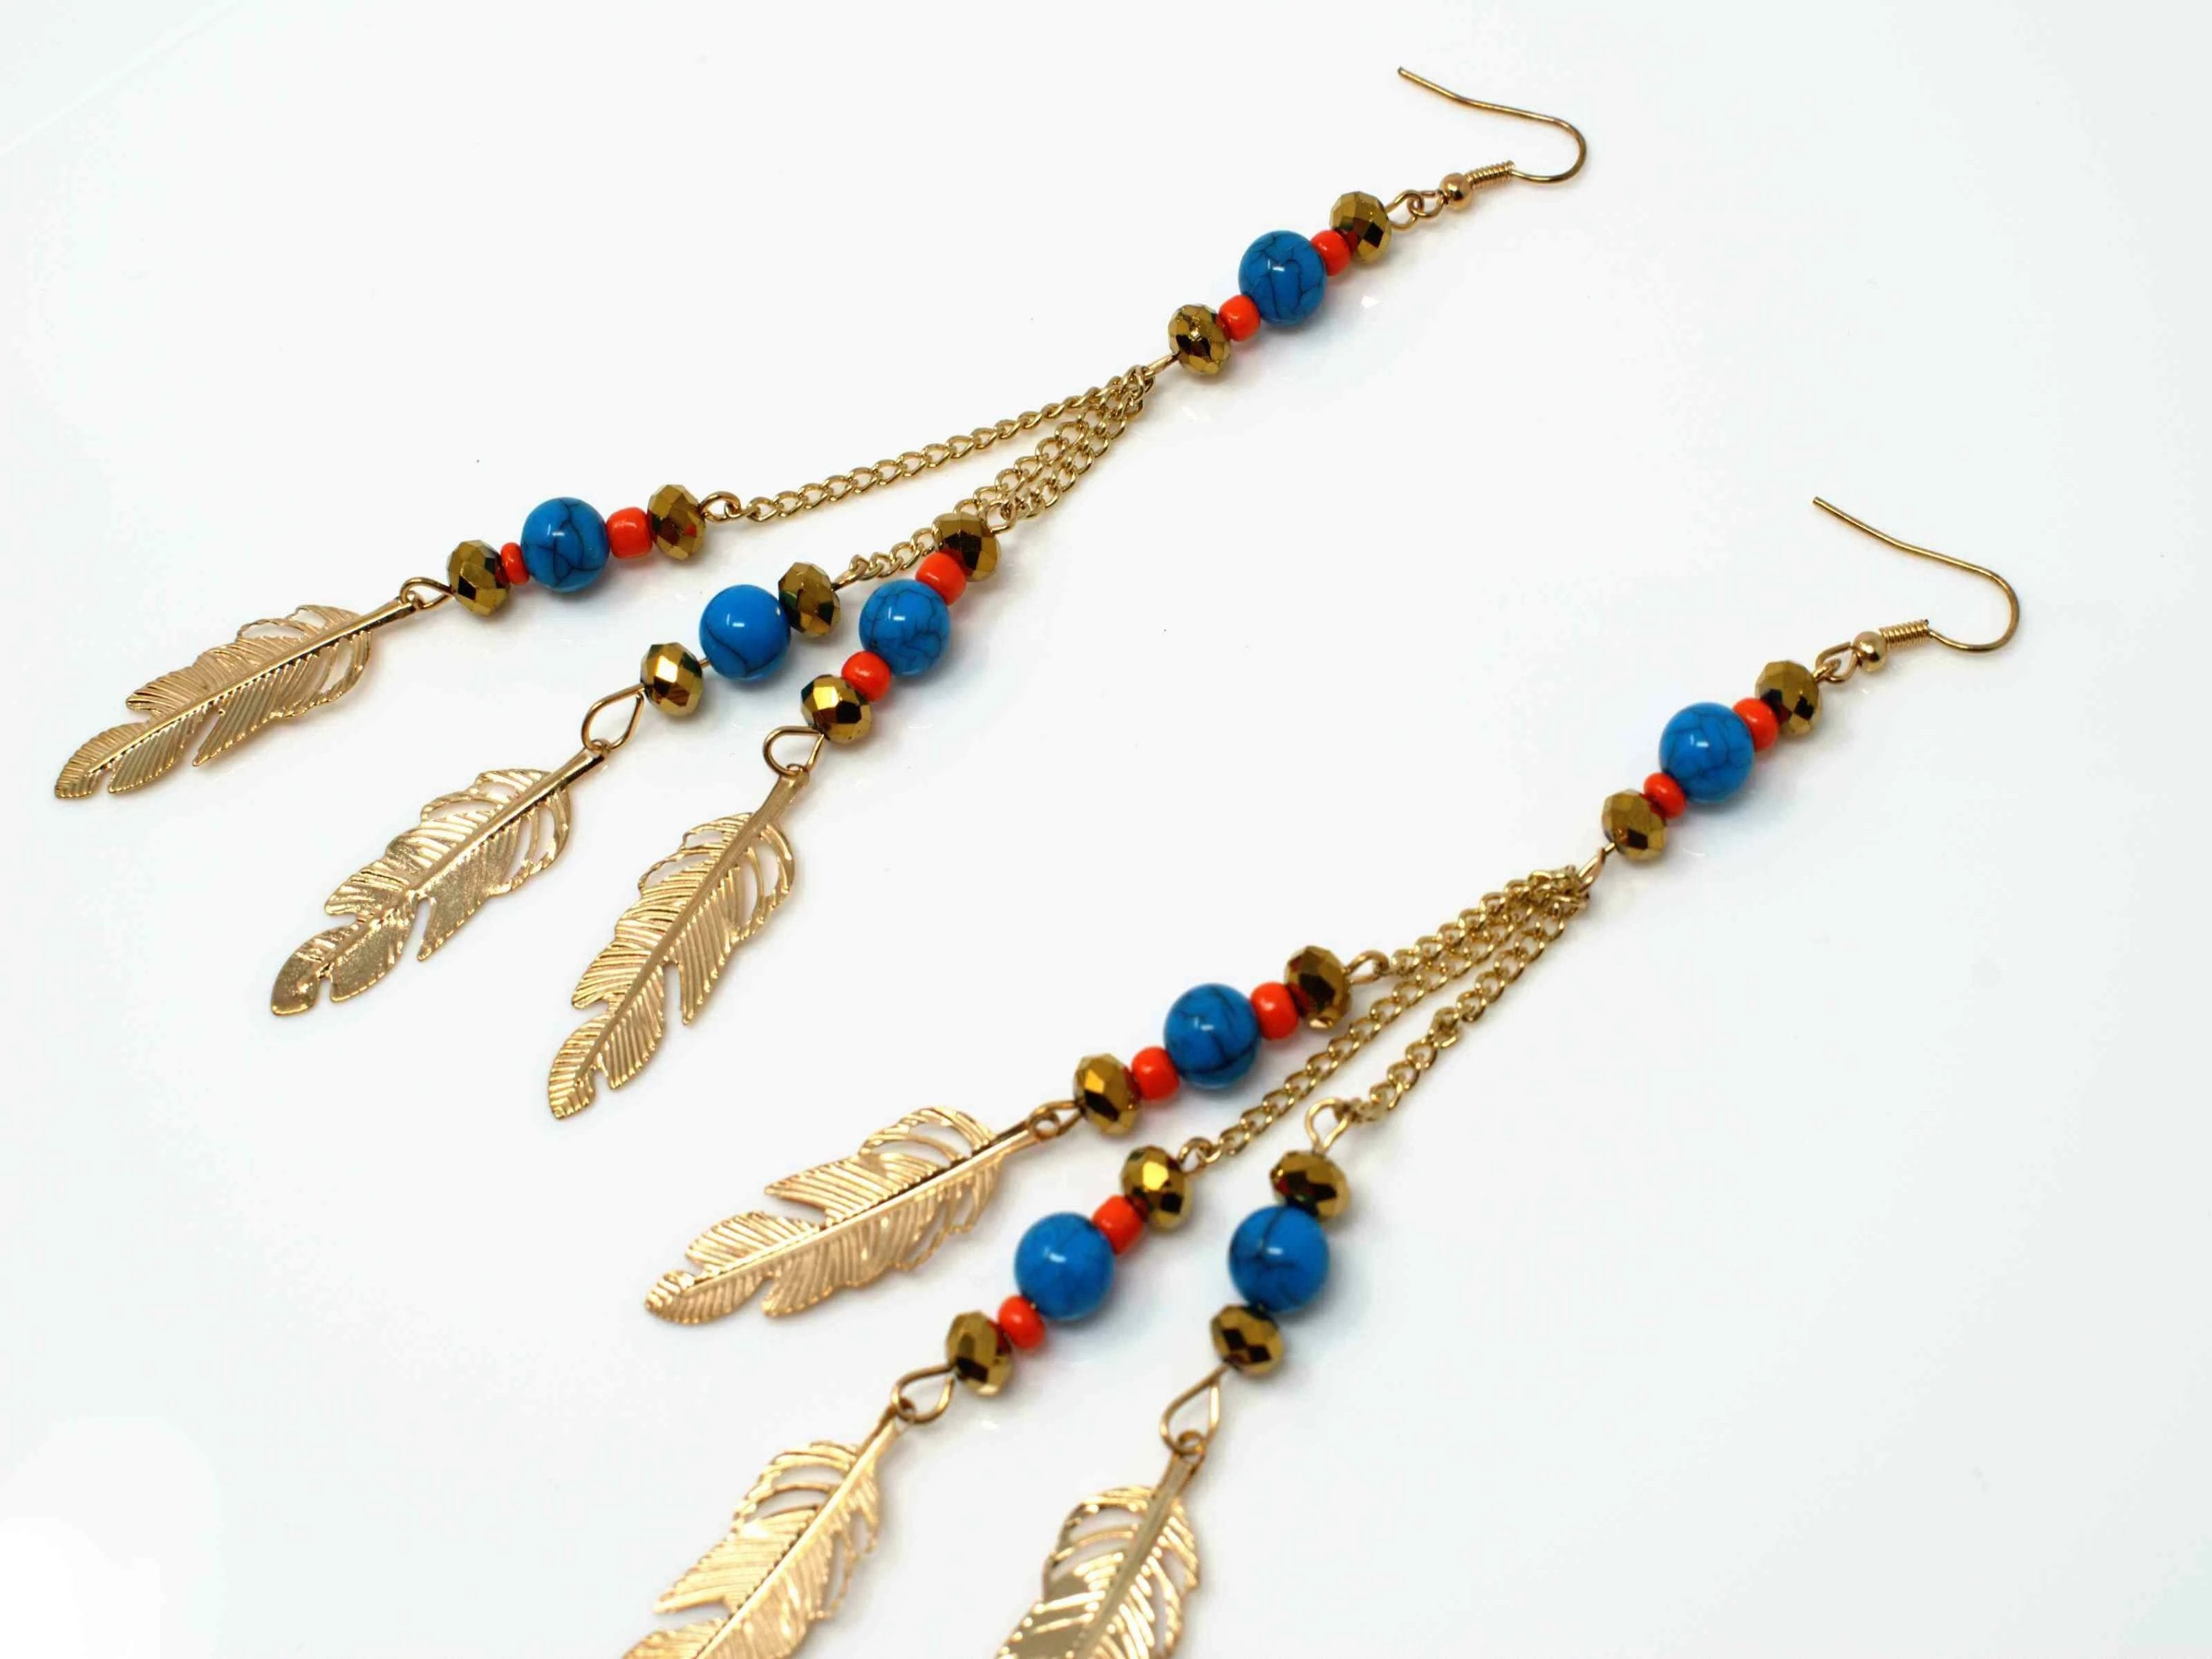 A charming gold drop dangle earring accented with bead and feather charms and a fish hook clasp.